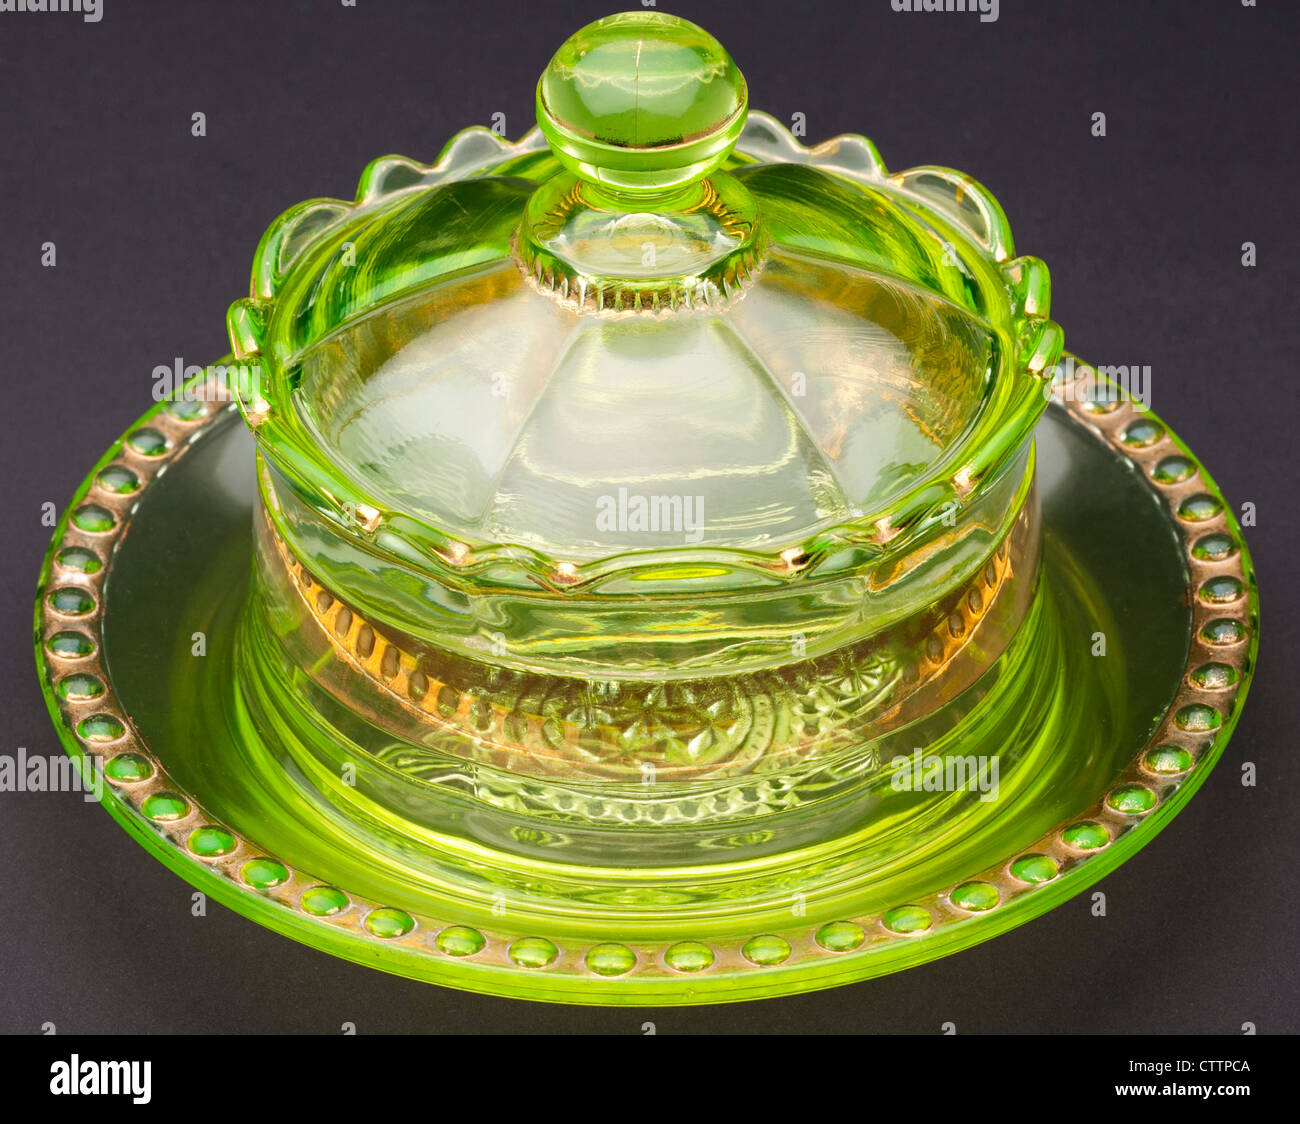 Top view of a Ranson 'gold band' Vaseline 'uranium glass' round covered butter dish produced by - Stock Image